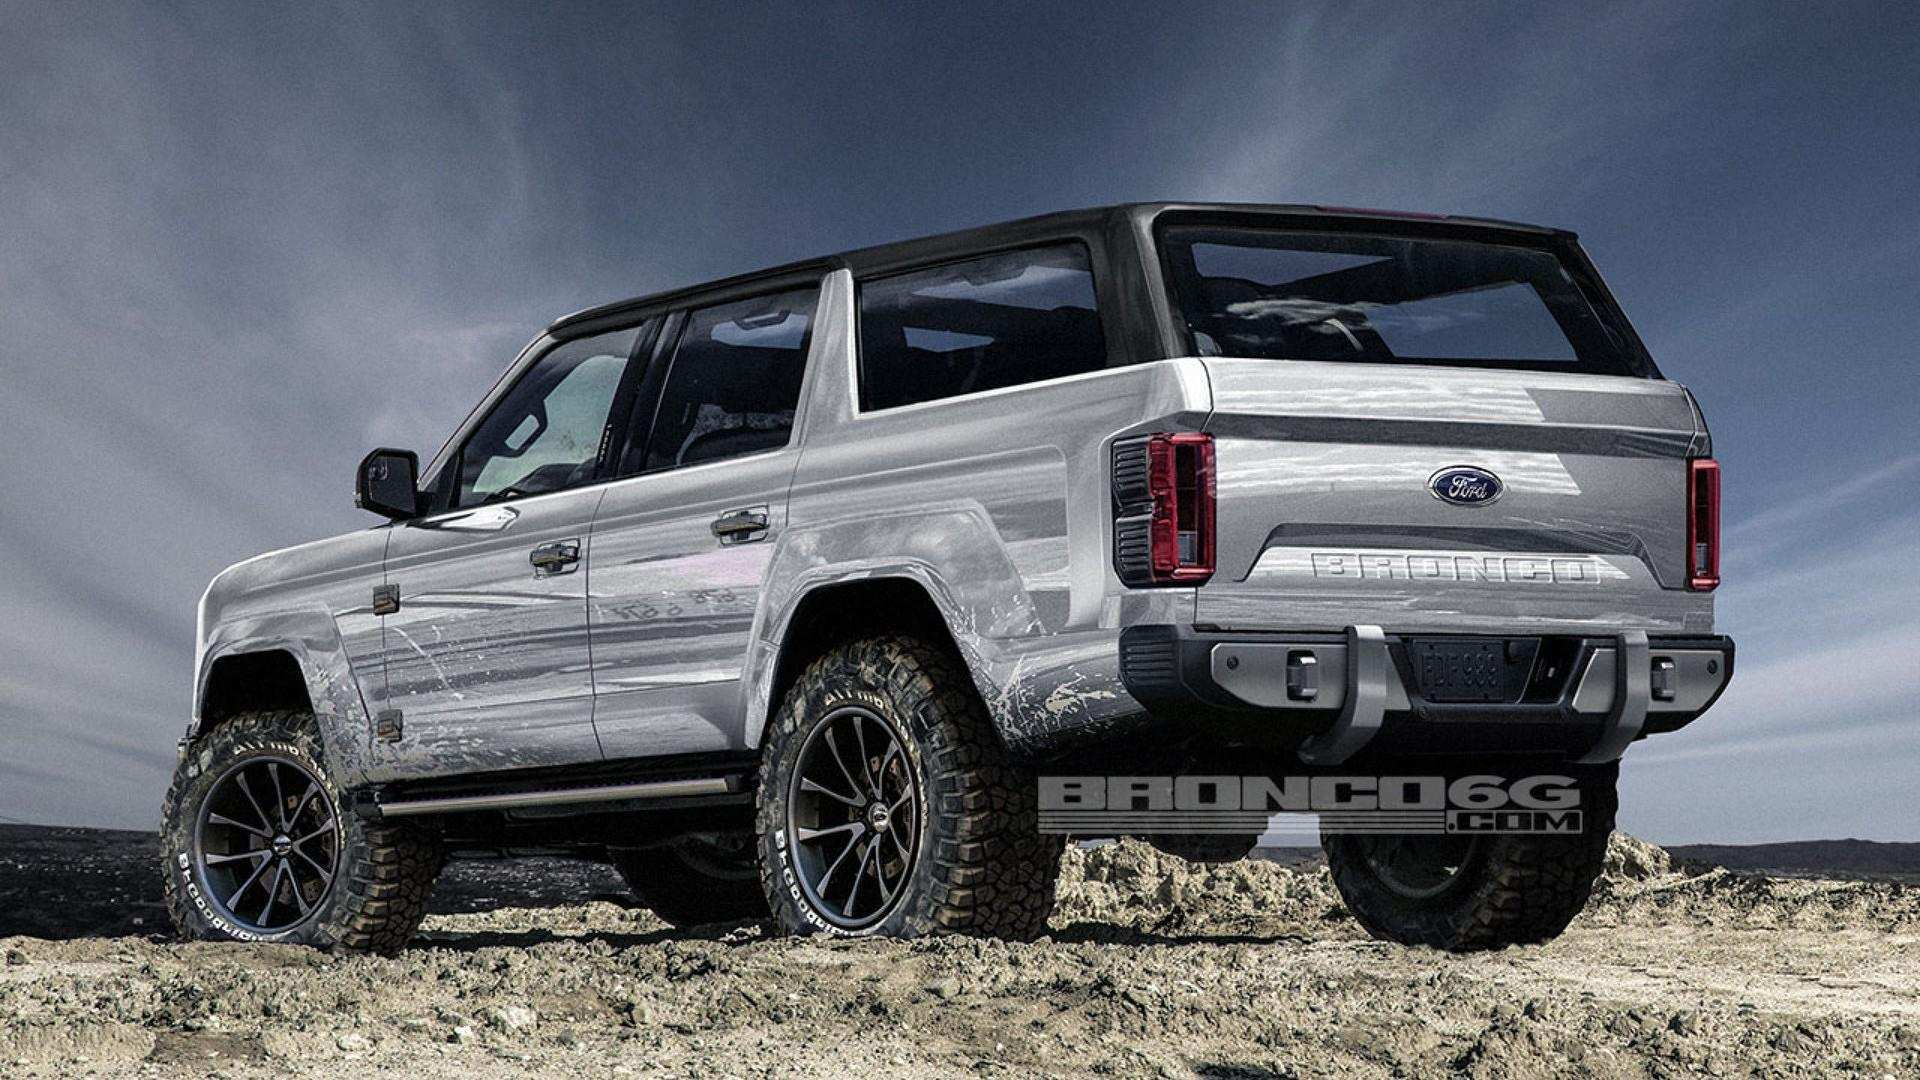 58 Great 2020 Ford Bronco With Removable Top Exterior and Interior with 2020 Ford Bronco With Removable Top